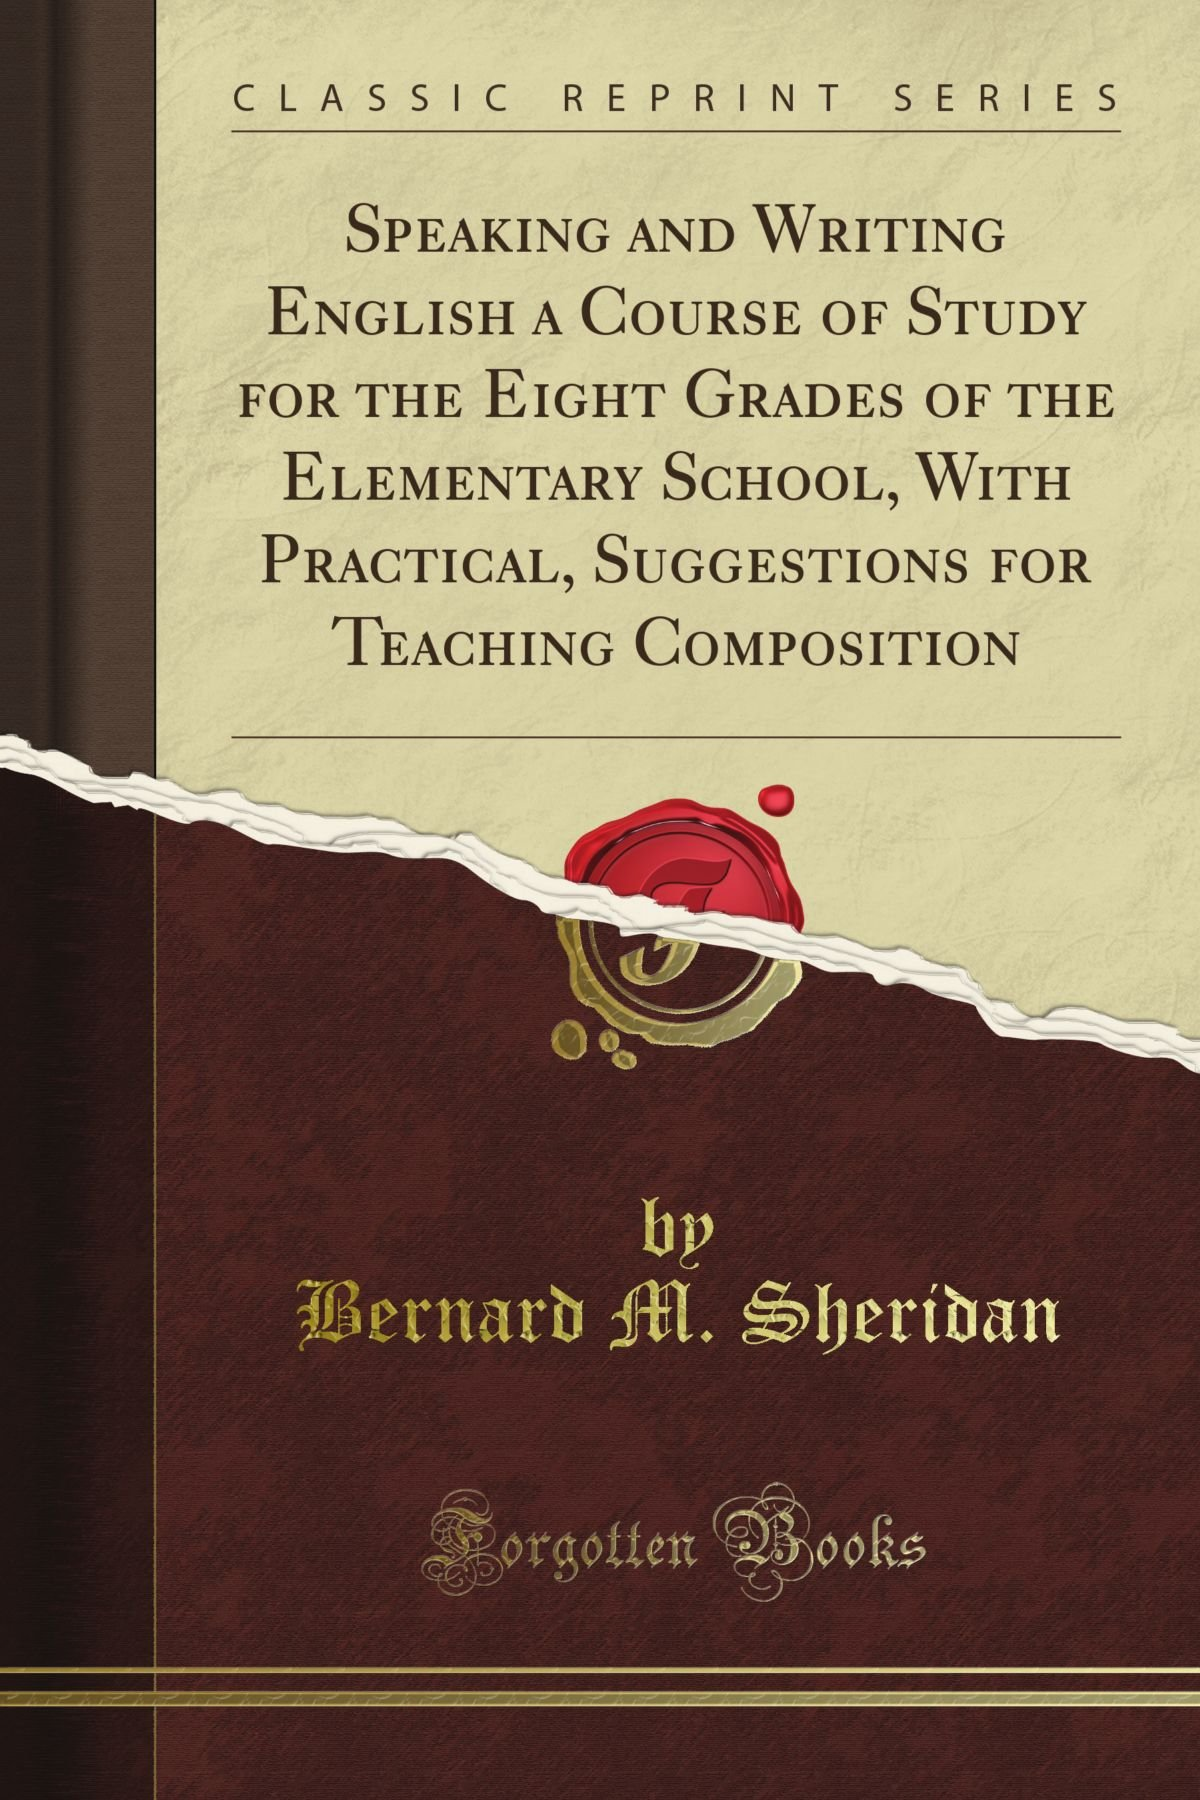 Download Speaking and Writing English a Course of Study for the Eight Grades of the Elementary School, With Practical, Suggestions for Teaching Composition (Classic Reprint) PDF